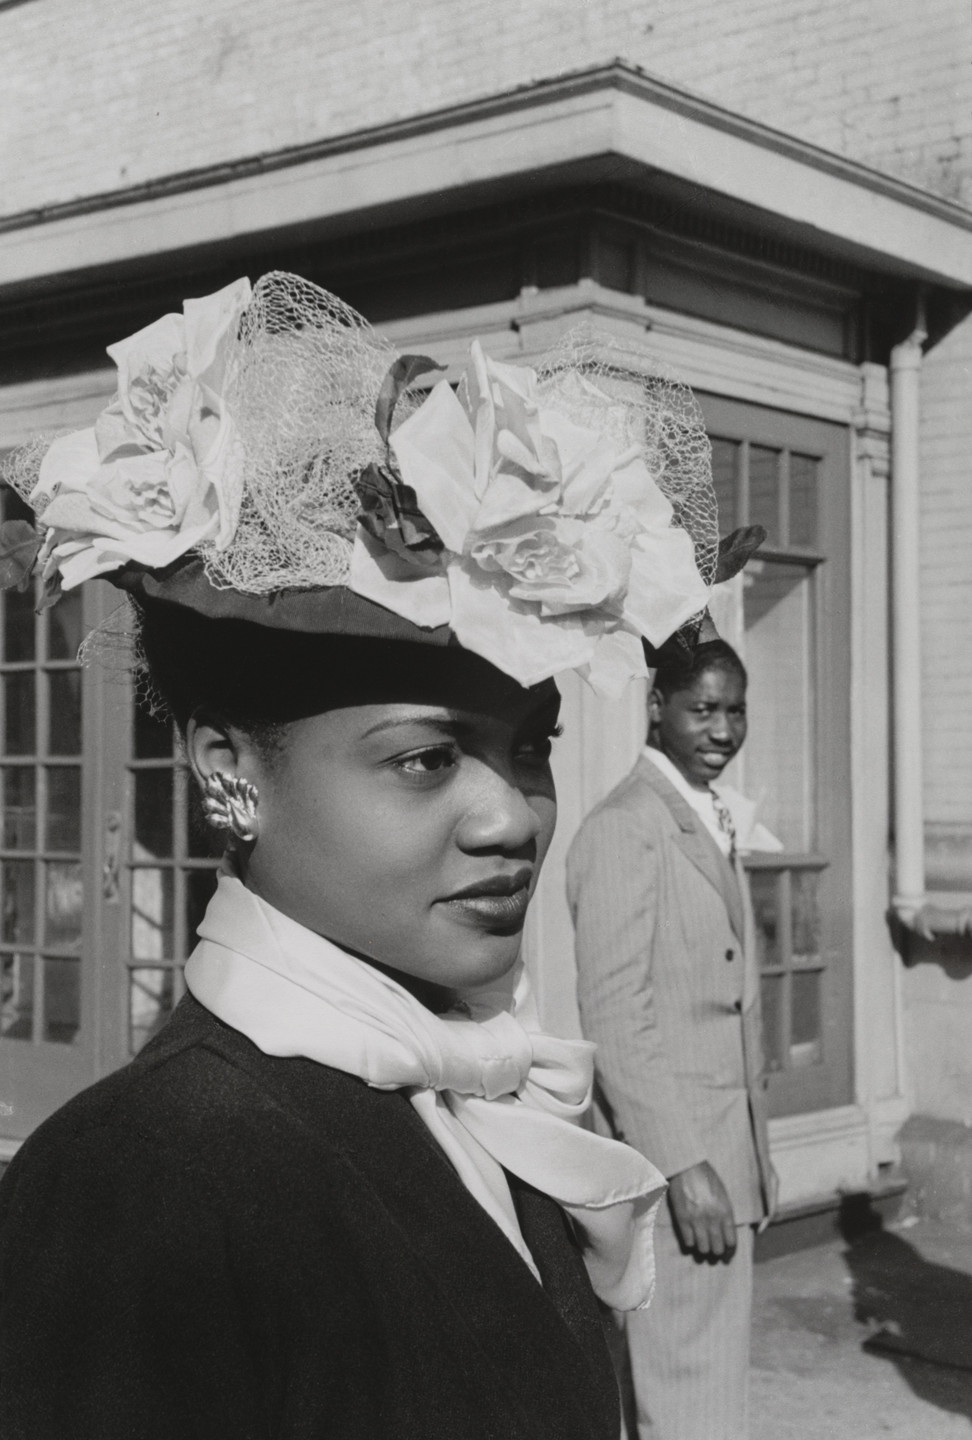 Henri Cartier-Bresson. Easter Sunday in Harlem, New York. 1947